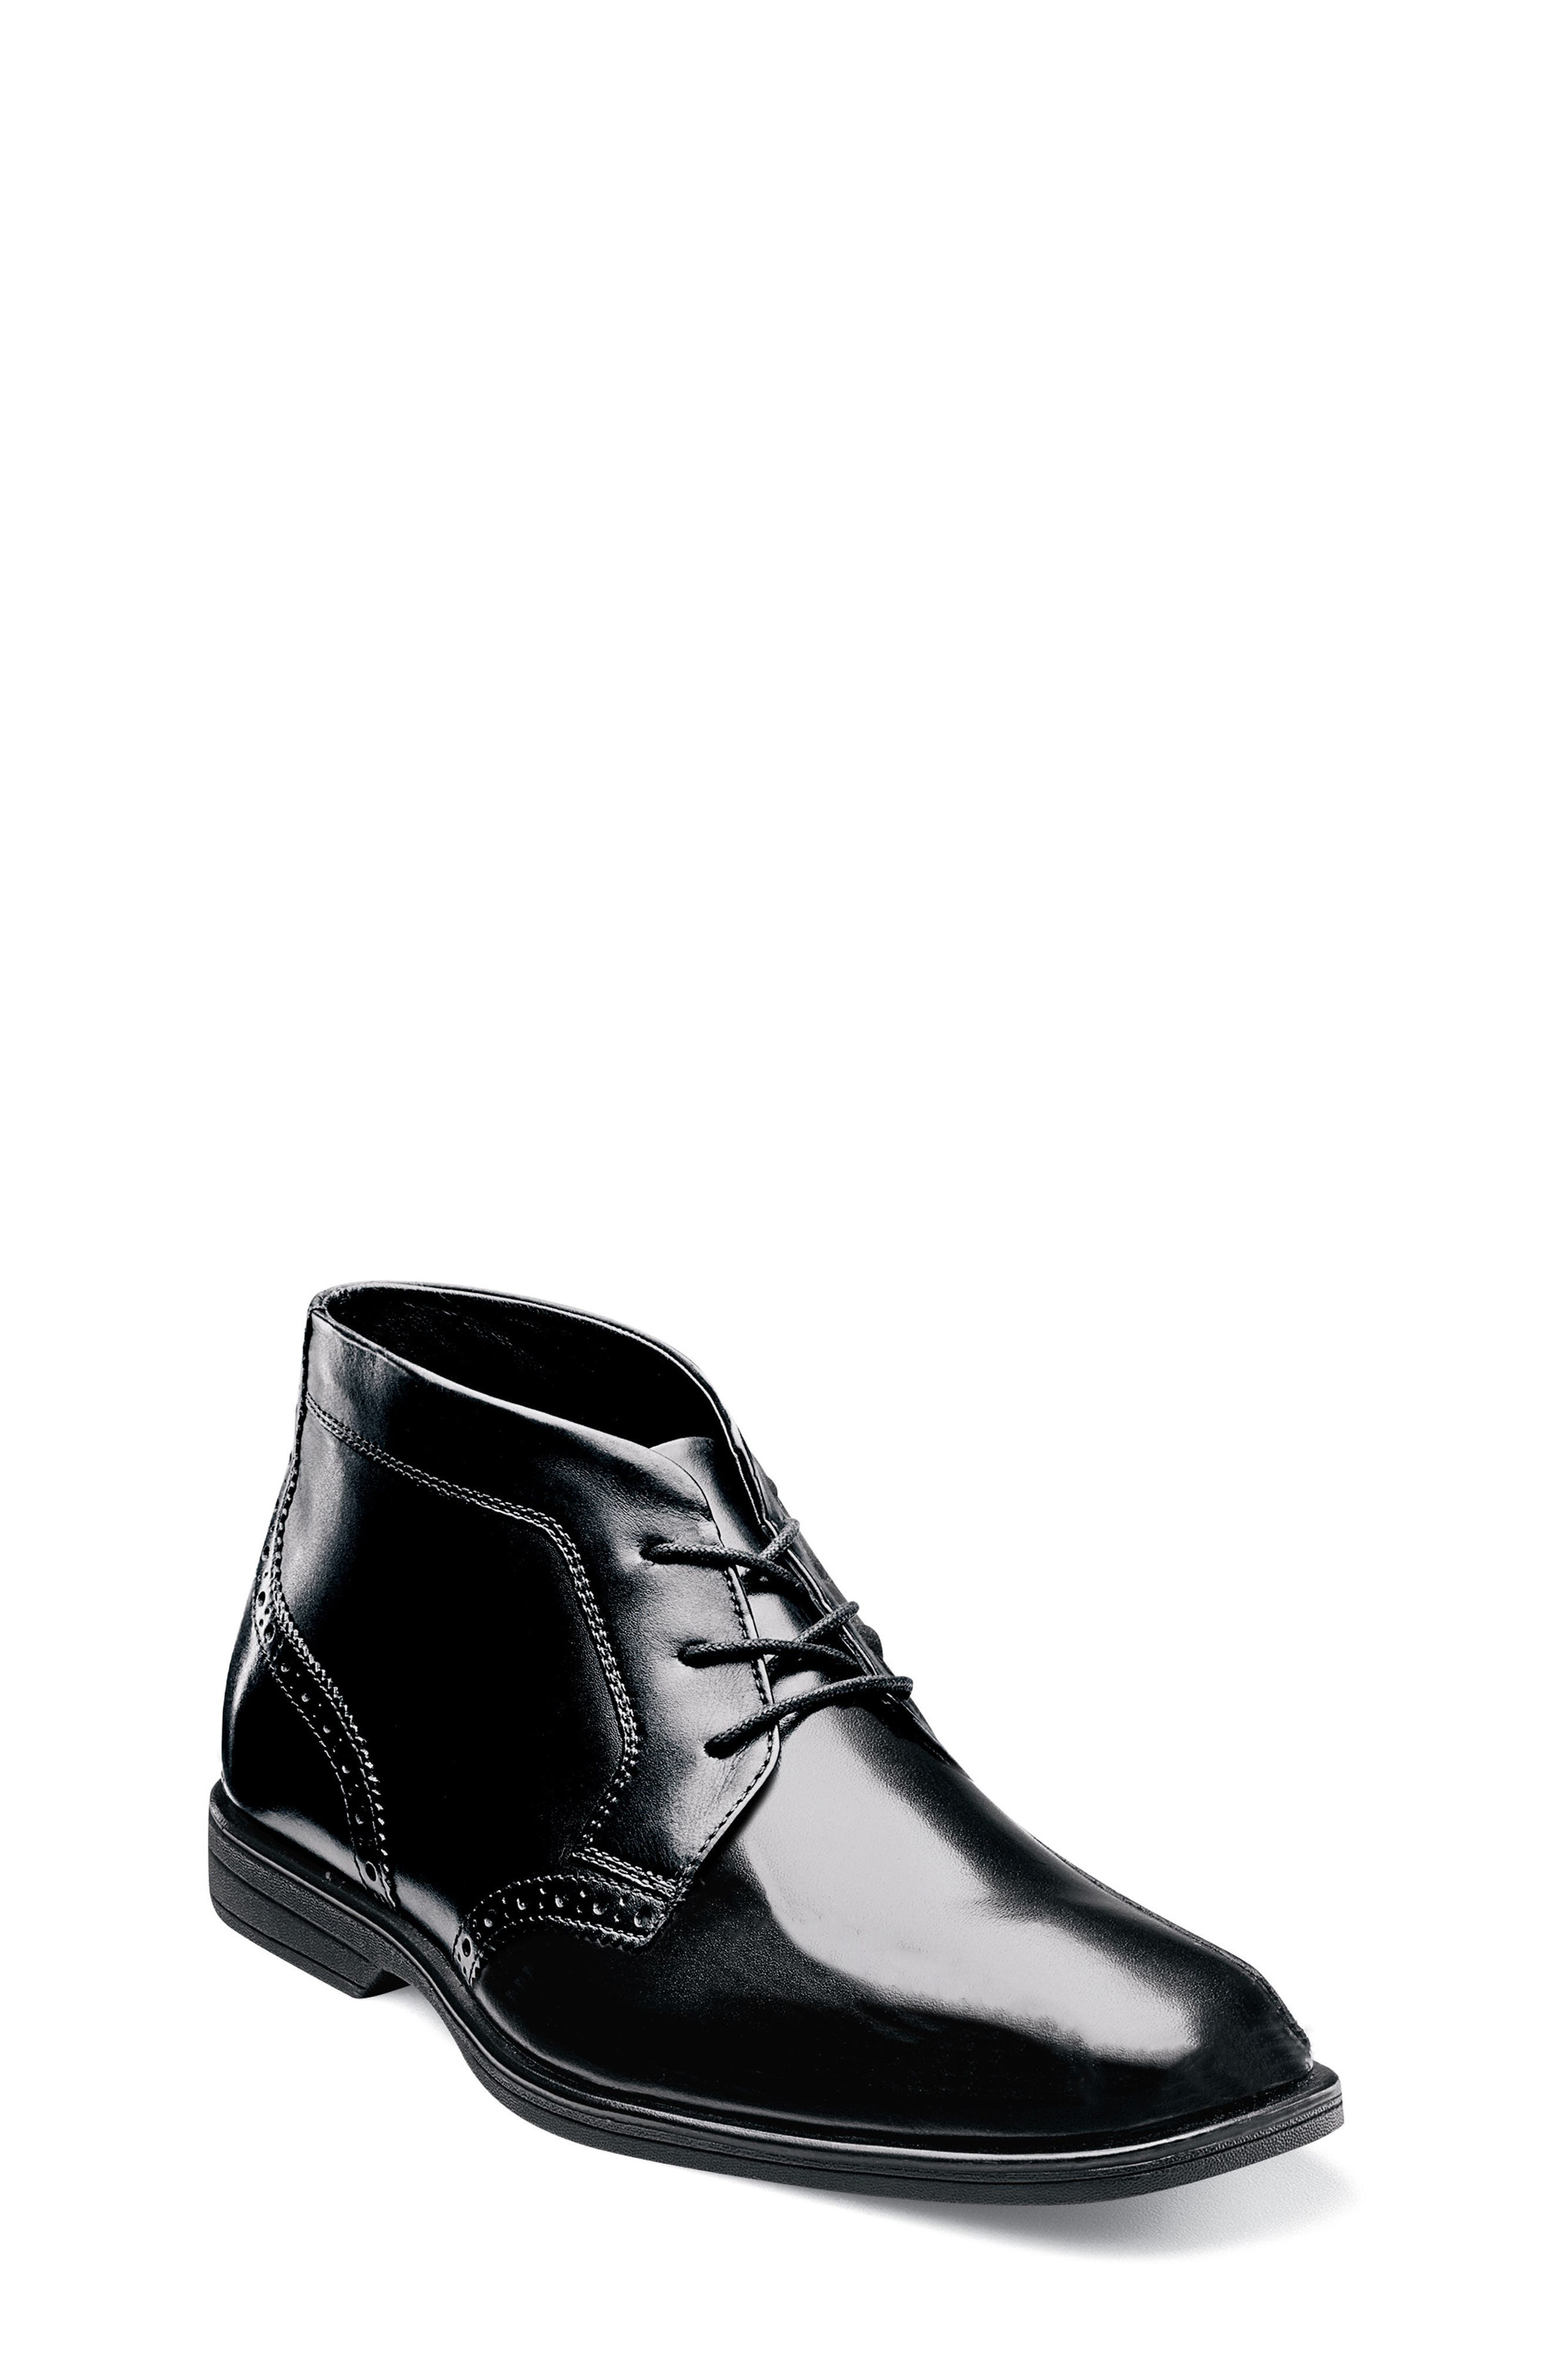 'Reveal' Chukka Boot,                         Main,                         color, BLACK LEATHER